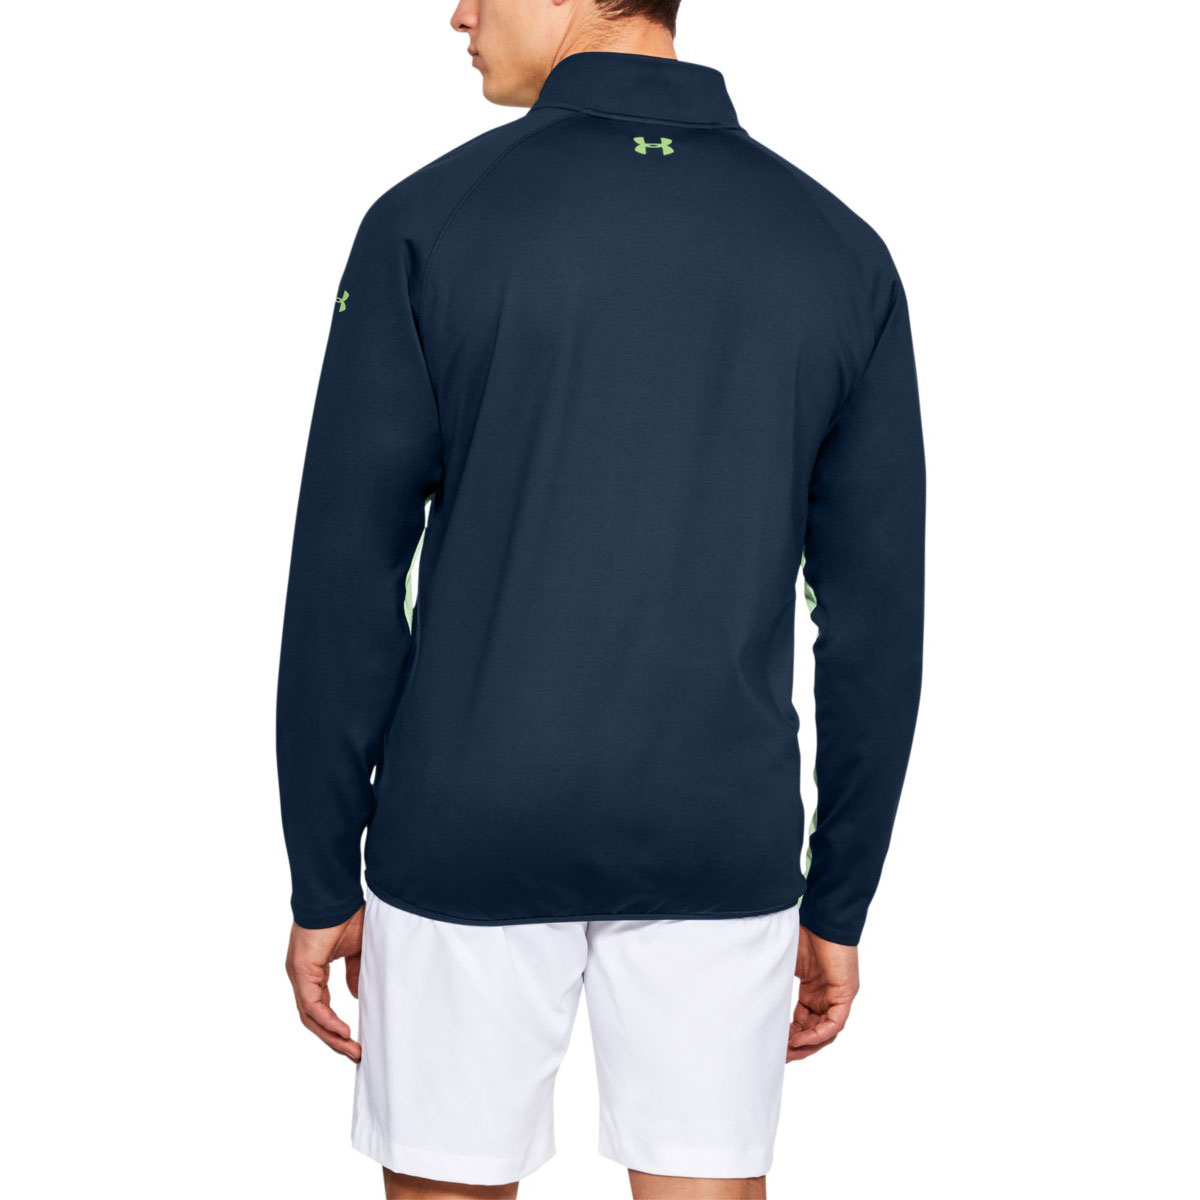 Under-Armour-Mens-Golf-1-4-Zip-Moisture-Control-Crestable-Sweater-45-OFF-RRP thumbnail 3